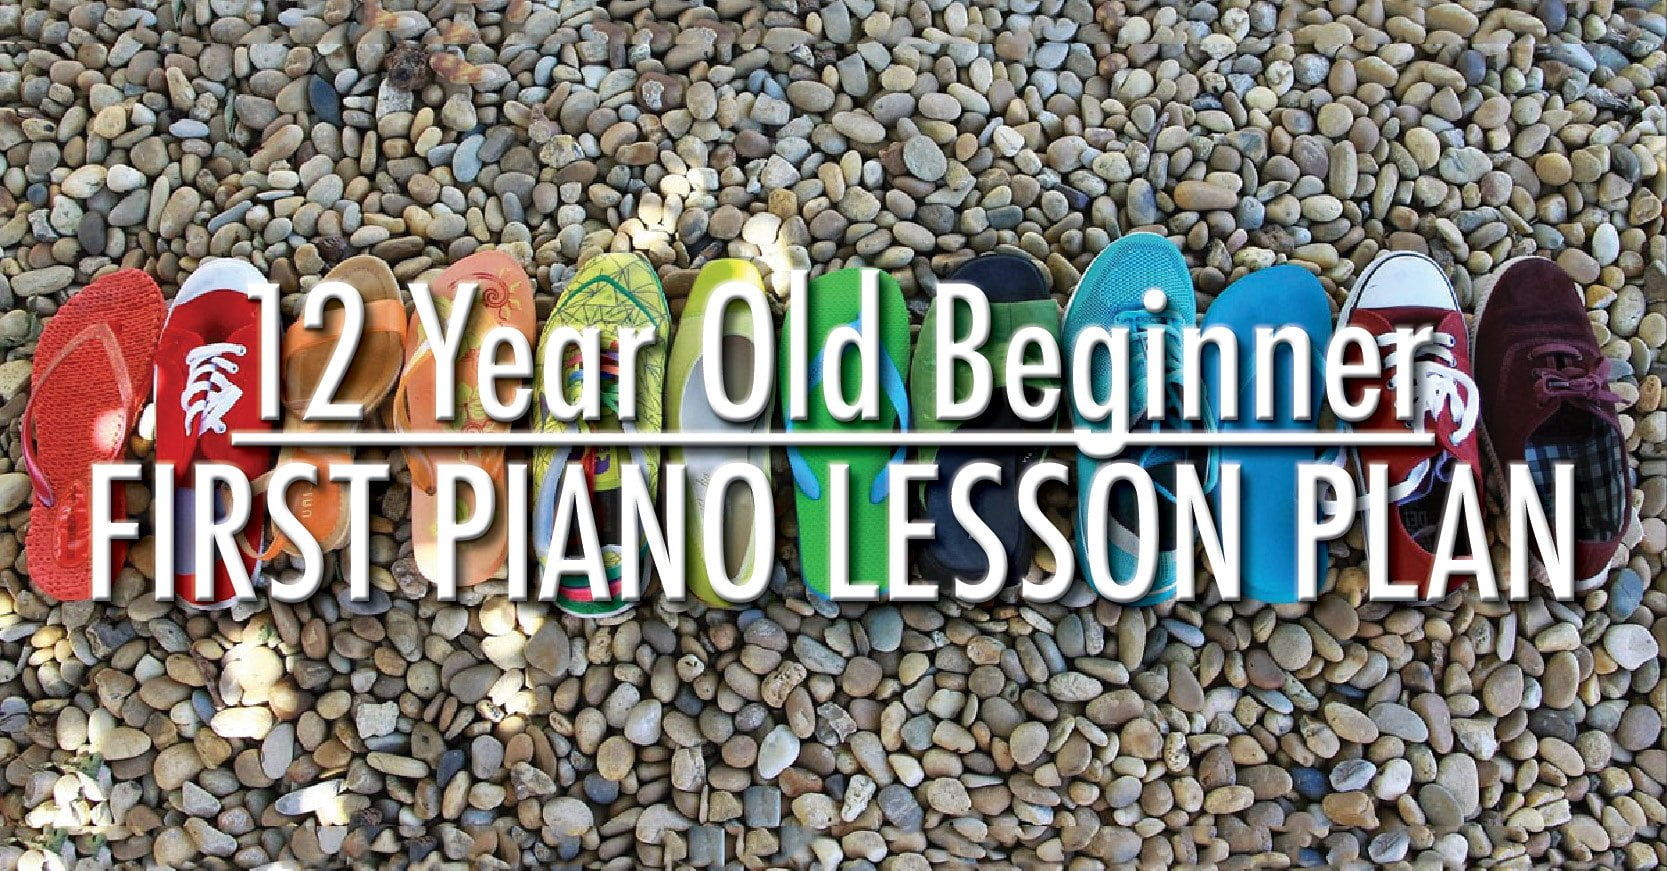 Plan The Ultimate First Piano Lesson For A Twelve Year Old